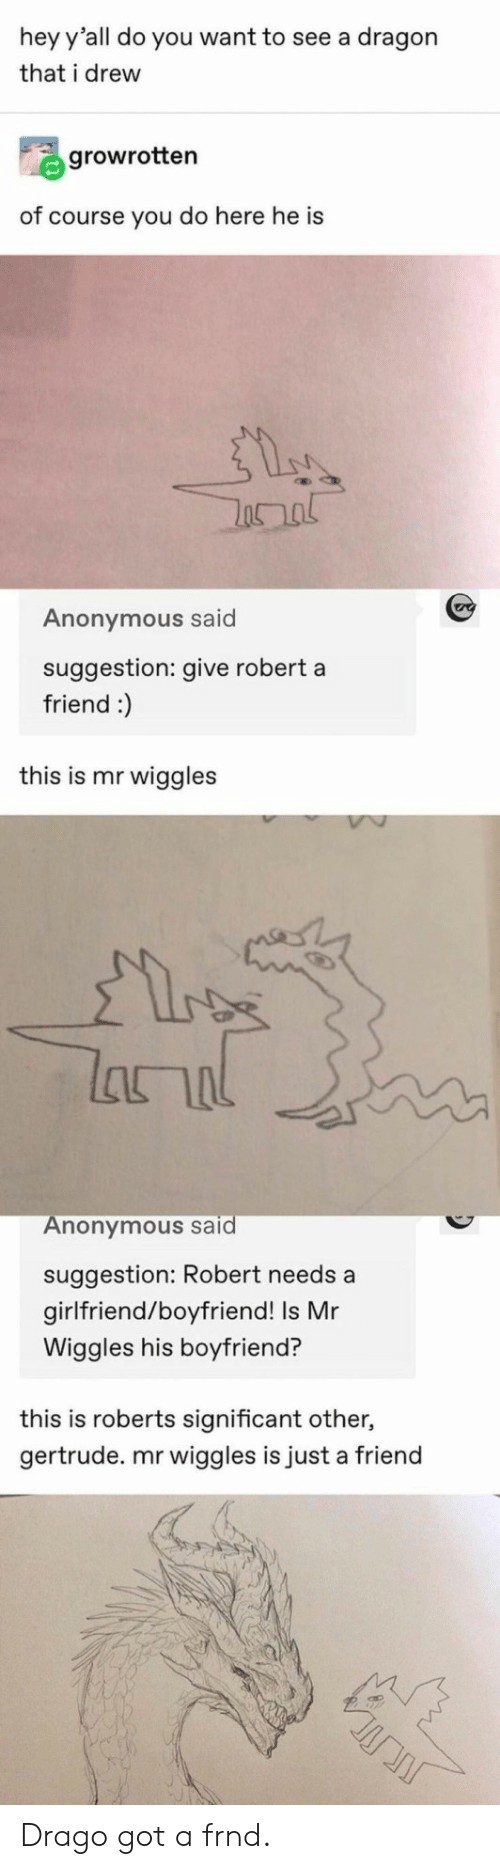 significant: hey y'all do you want to see a dragon  that i drew  growrotten  of course you do here he is  Anonymous said  suggestion: give robert a  friend :)  this is mr wiggles  lanal  Anonymous said  suggestion: Robert needs a  girlfriend/boyfriend! Is Mr  Wiggles his boyfriend?  this is roberts significant other,  gertrude. mr wiggles is just a friend Drago got a frnd.